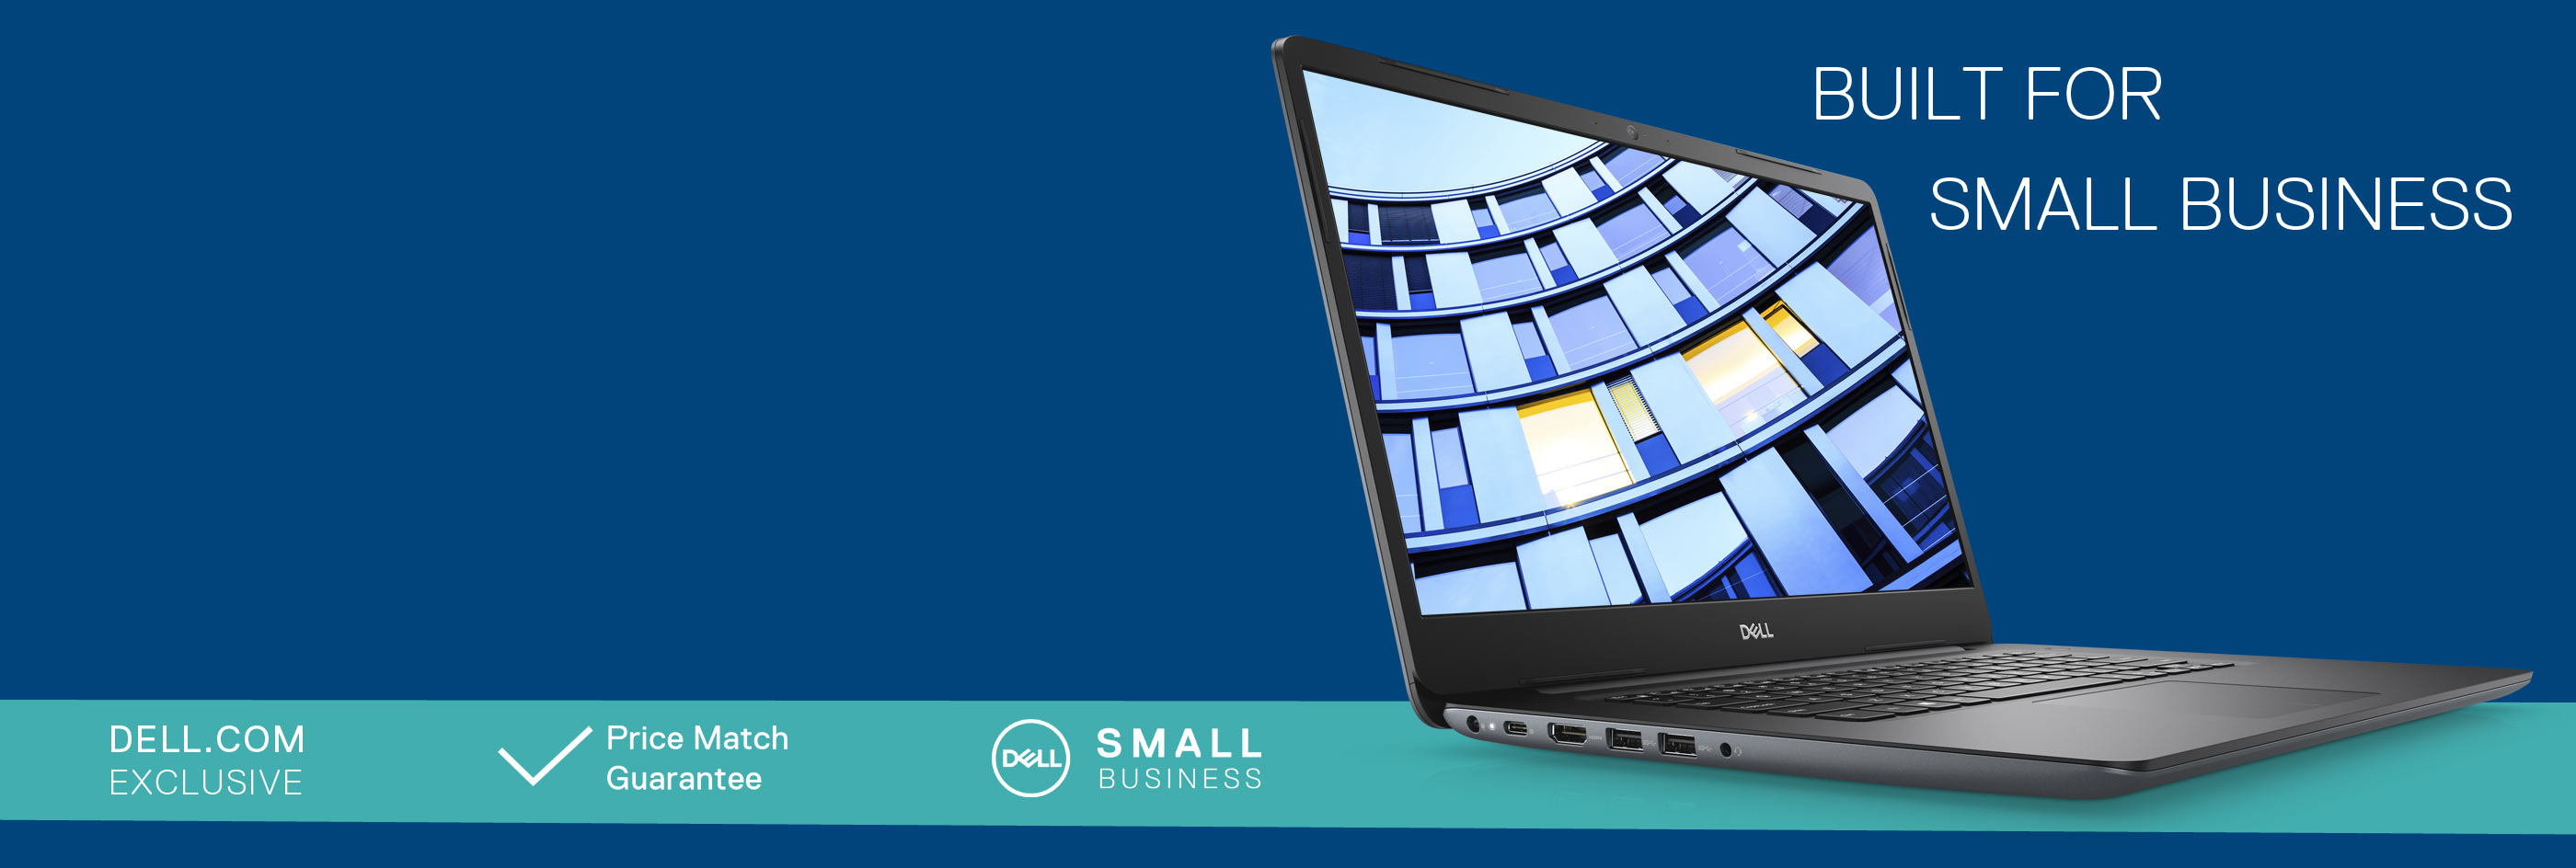 Built for Small Business: Up to 35% off selected laptops.